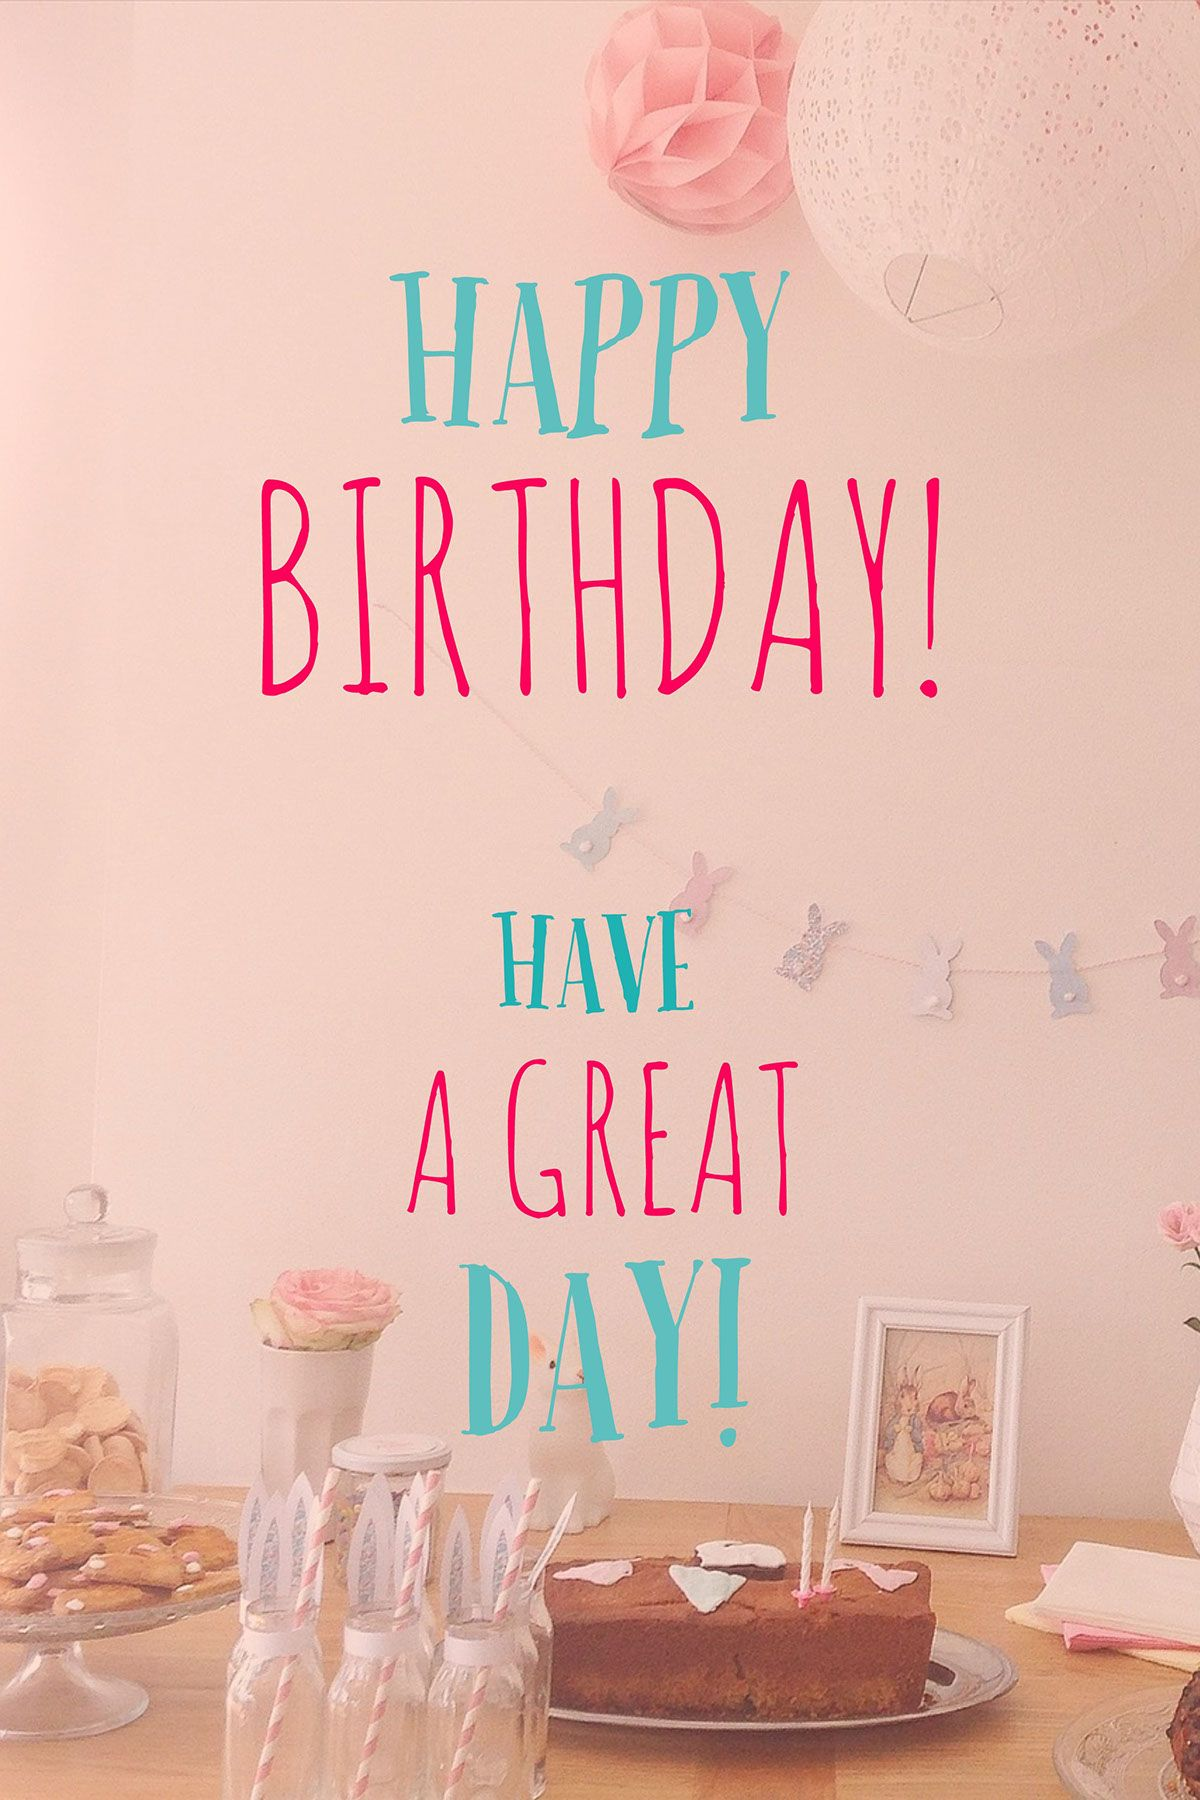 Pin By Debbie Hines On Happy Birthday Cards Happy Birthday Cards Birthday Card Online Happy Birthday Cards Printable